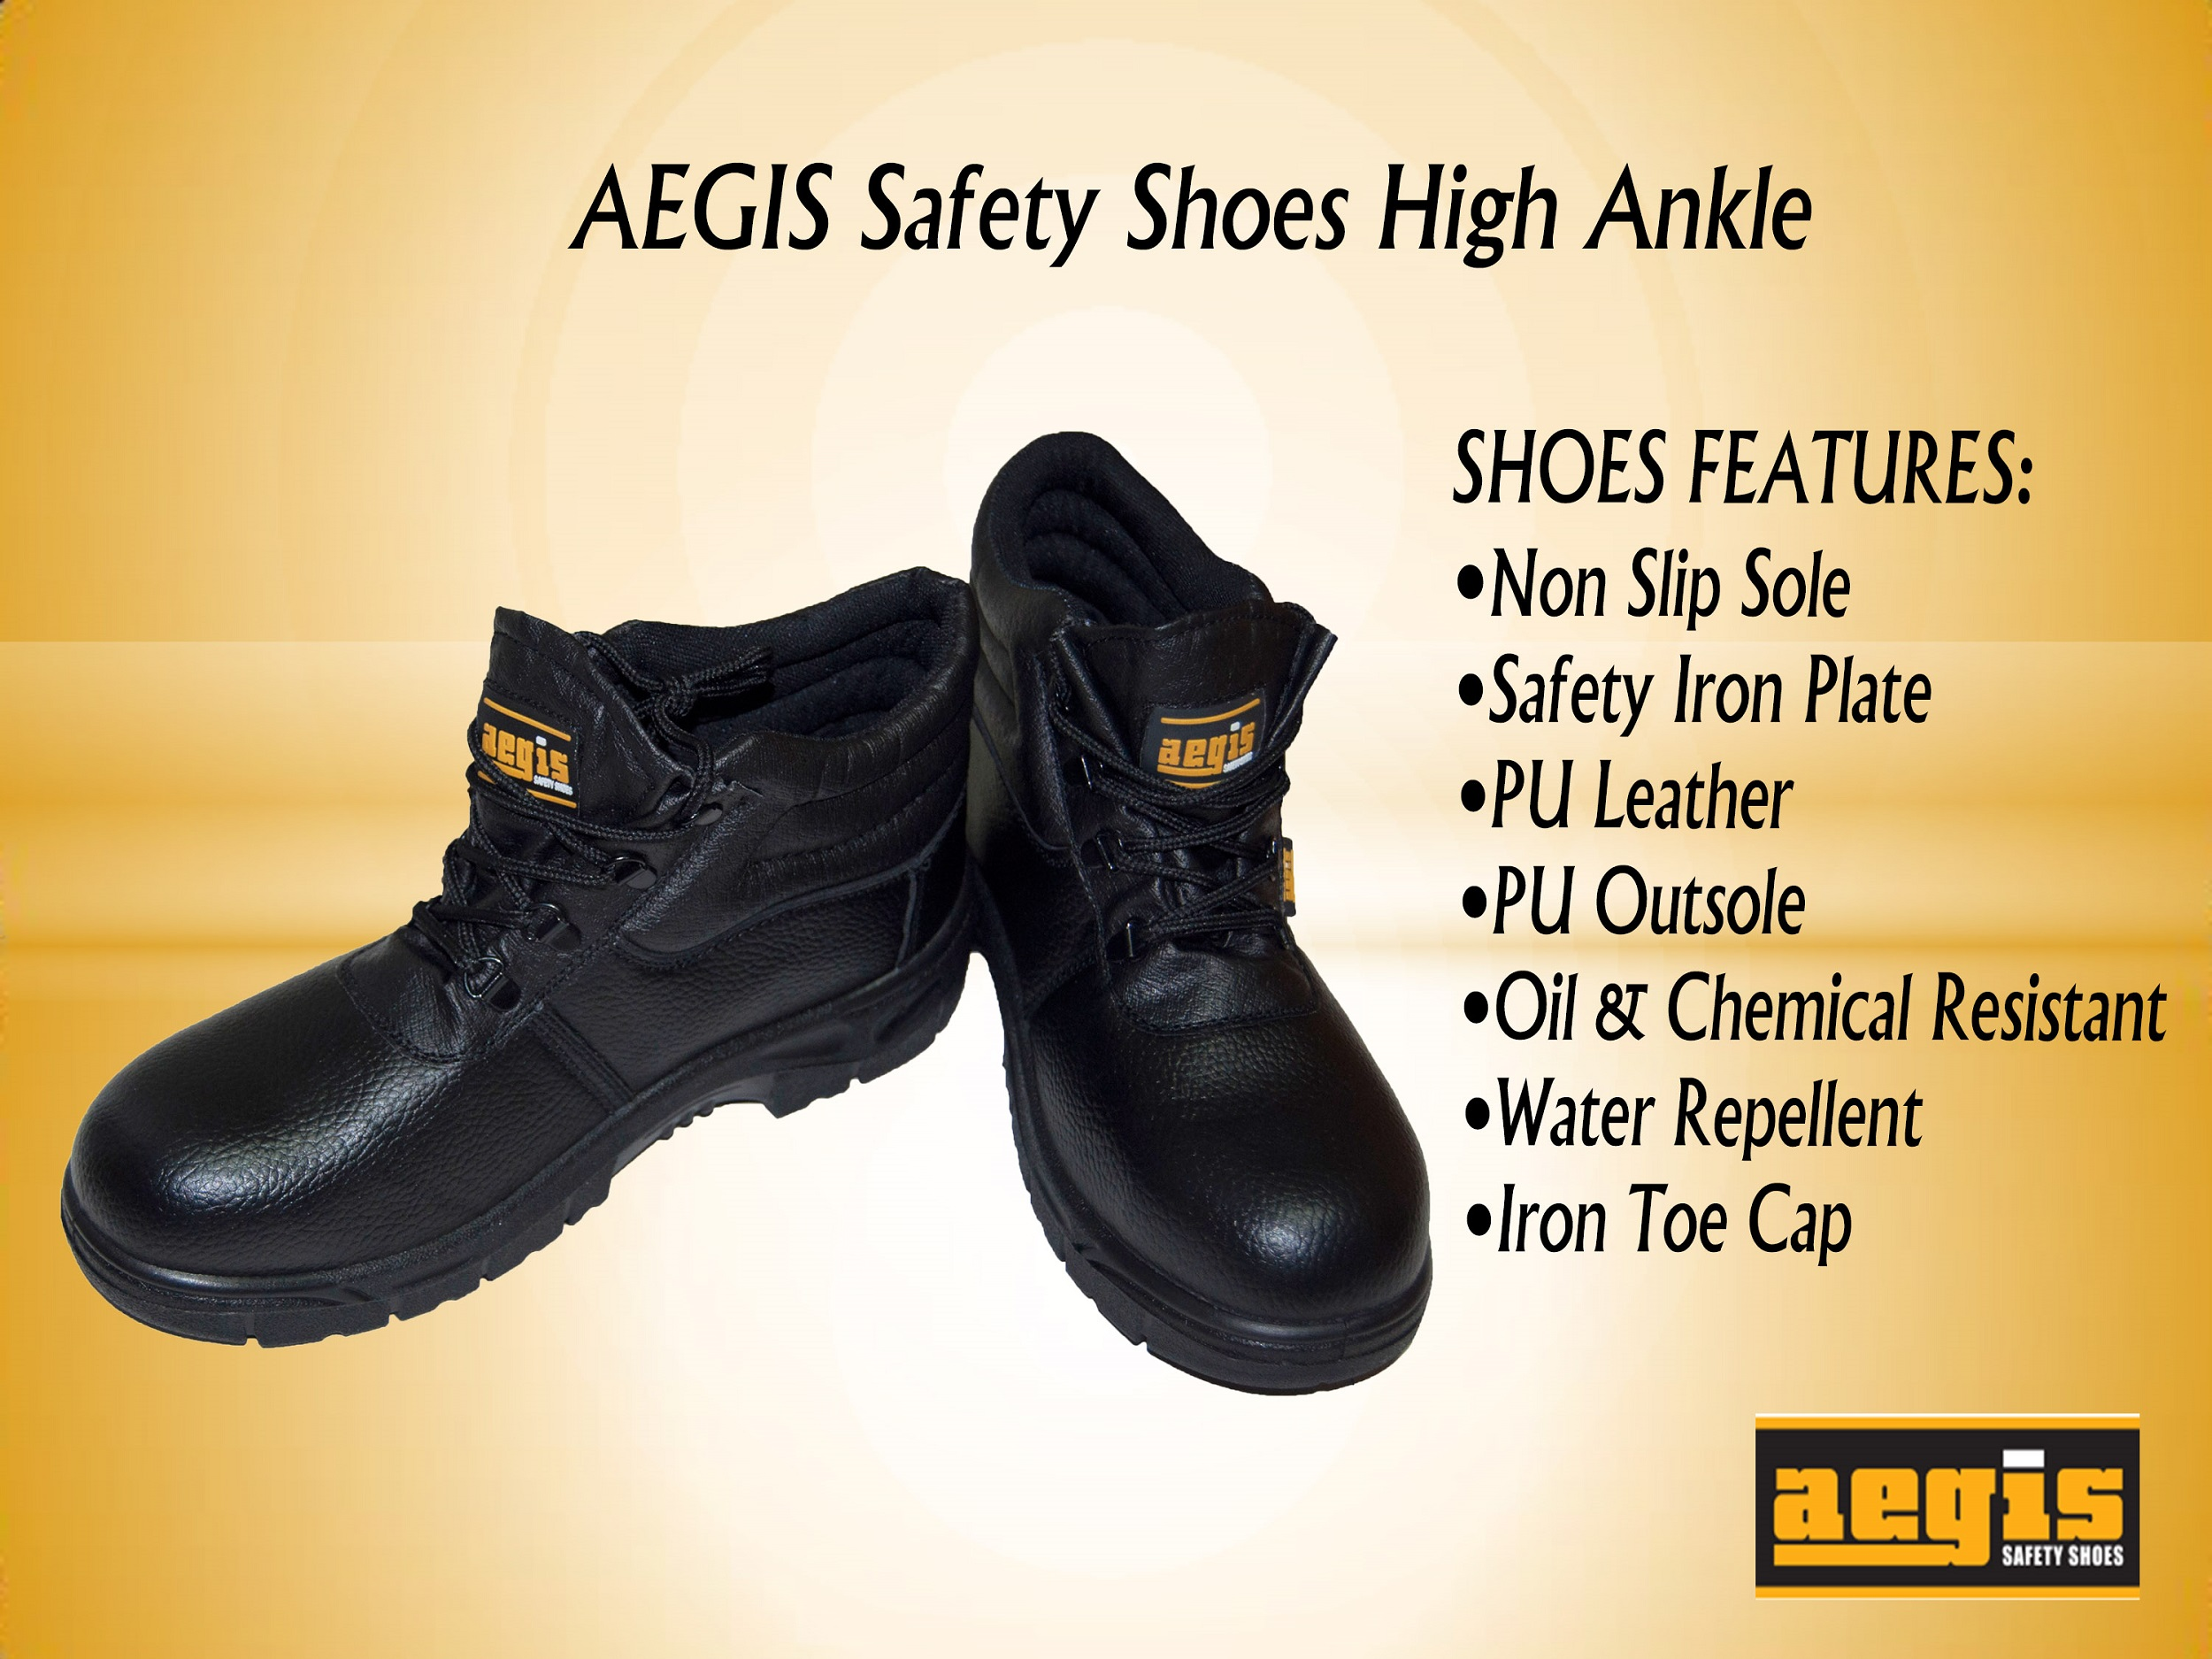 AEGIS High Ankle Safety Shoes